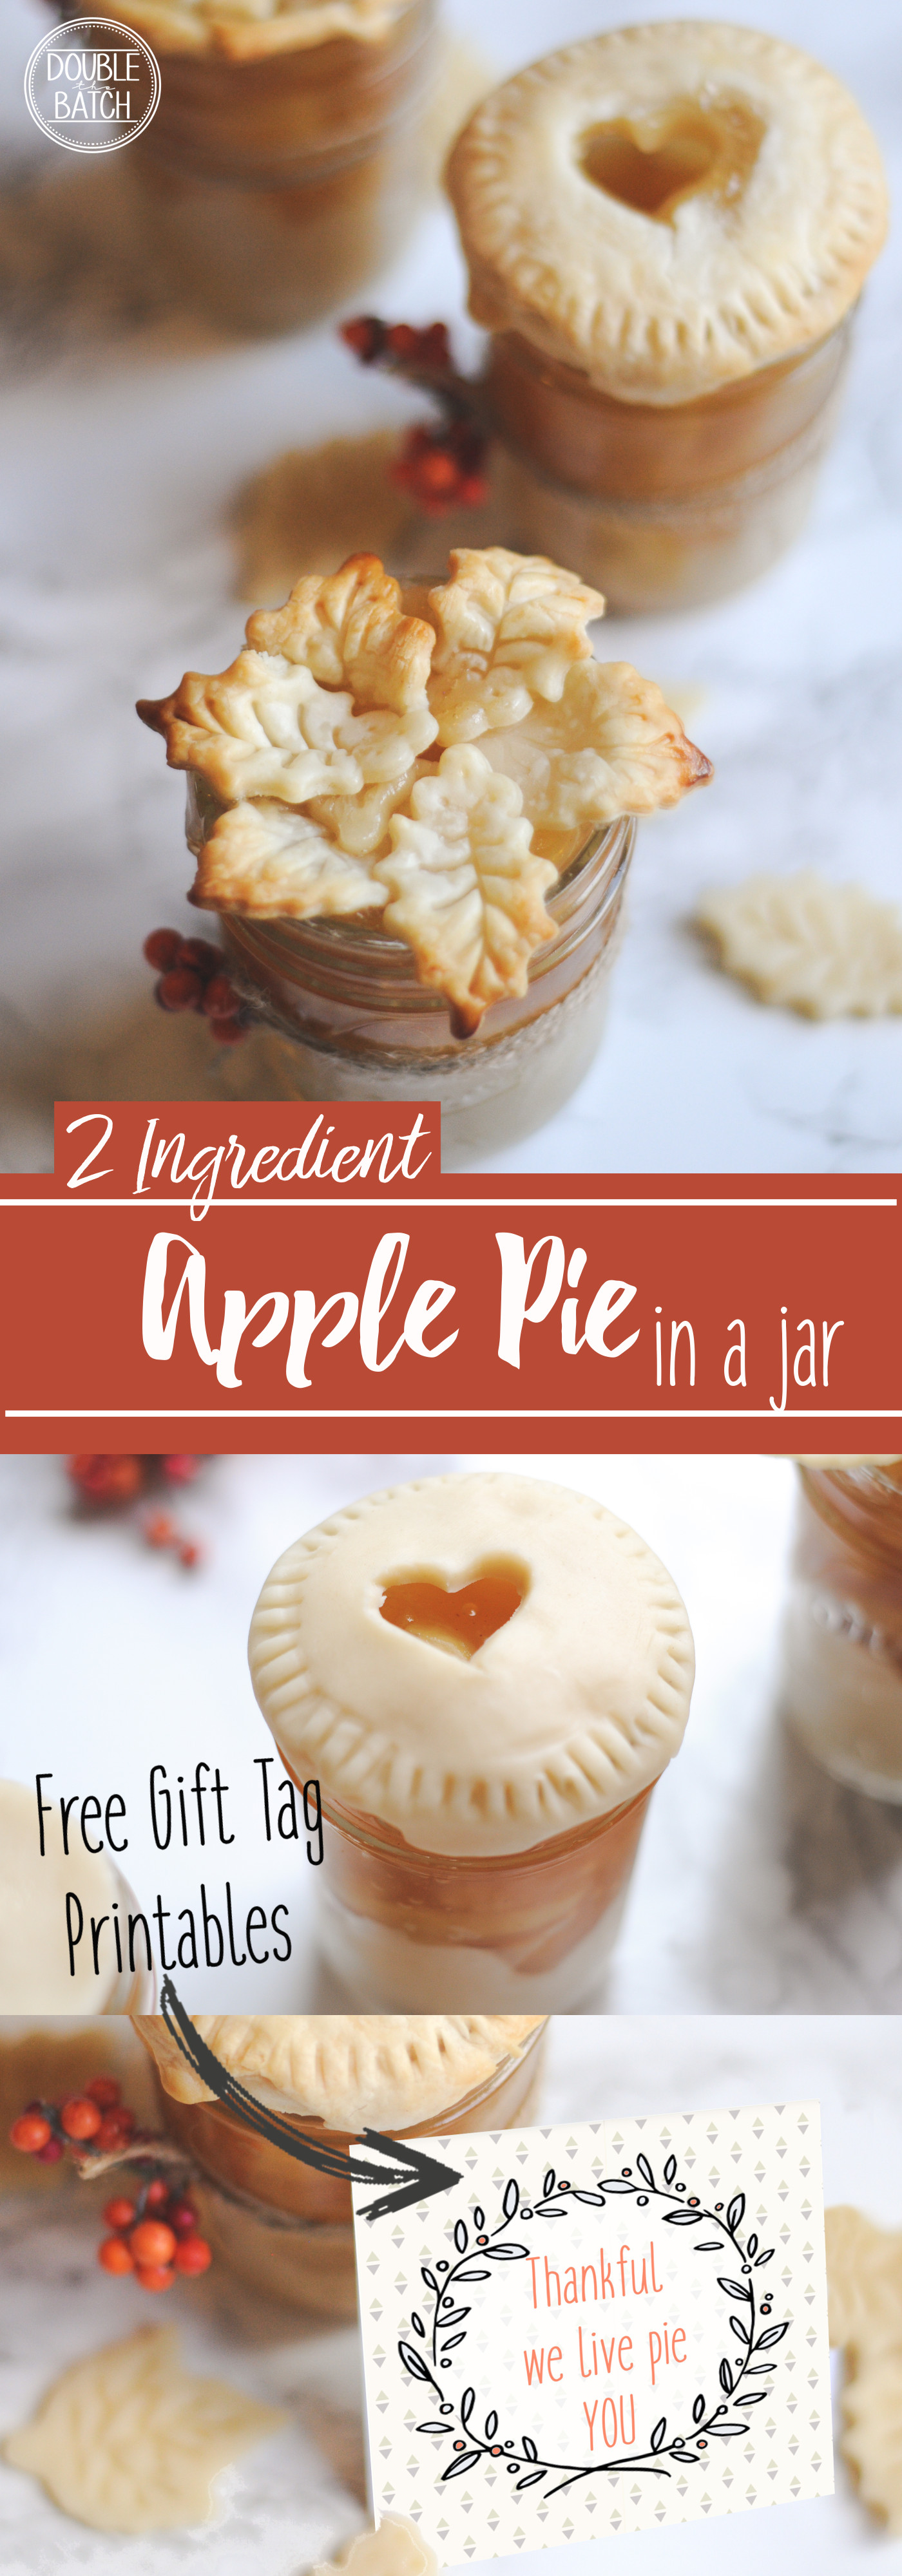 2 Ingredient apple pie in a jar. A perfect holiday gift idea with free printable gift tags included.